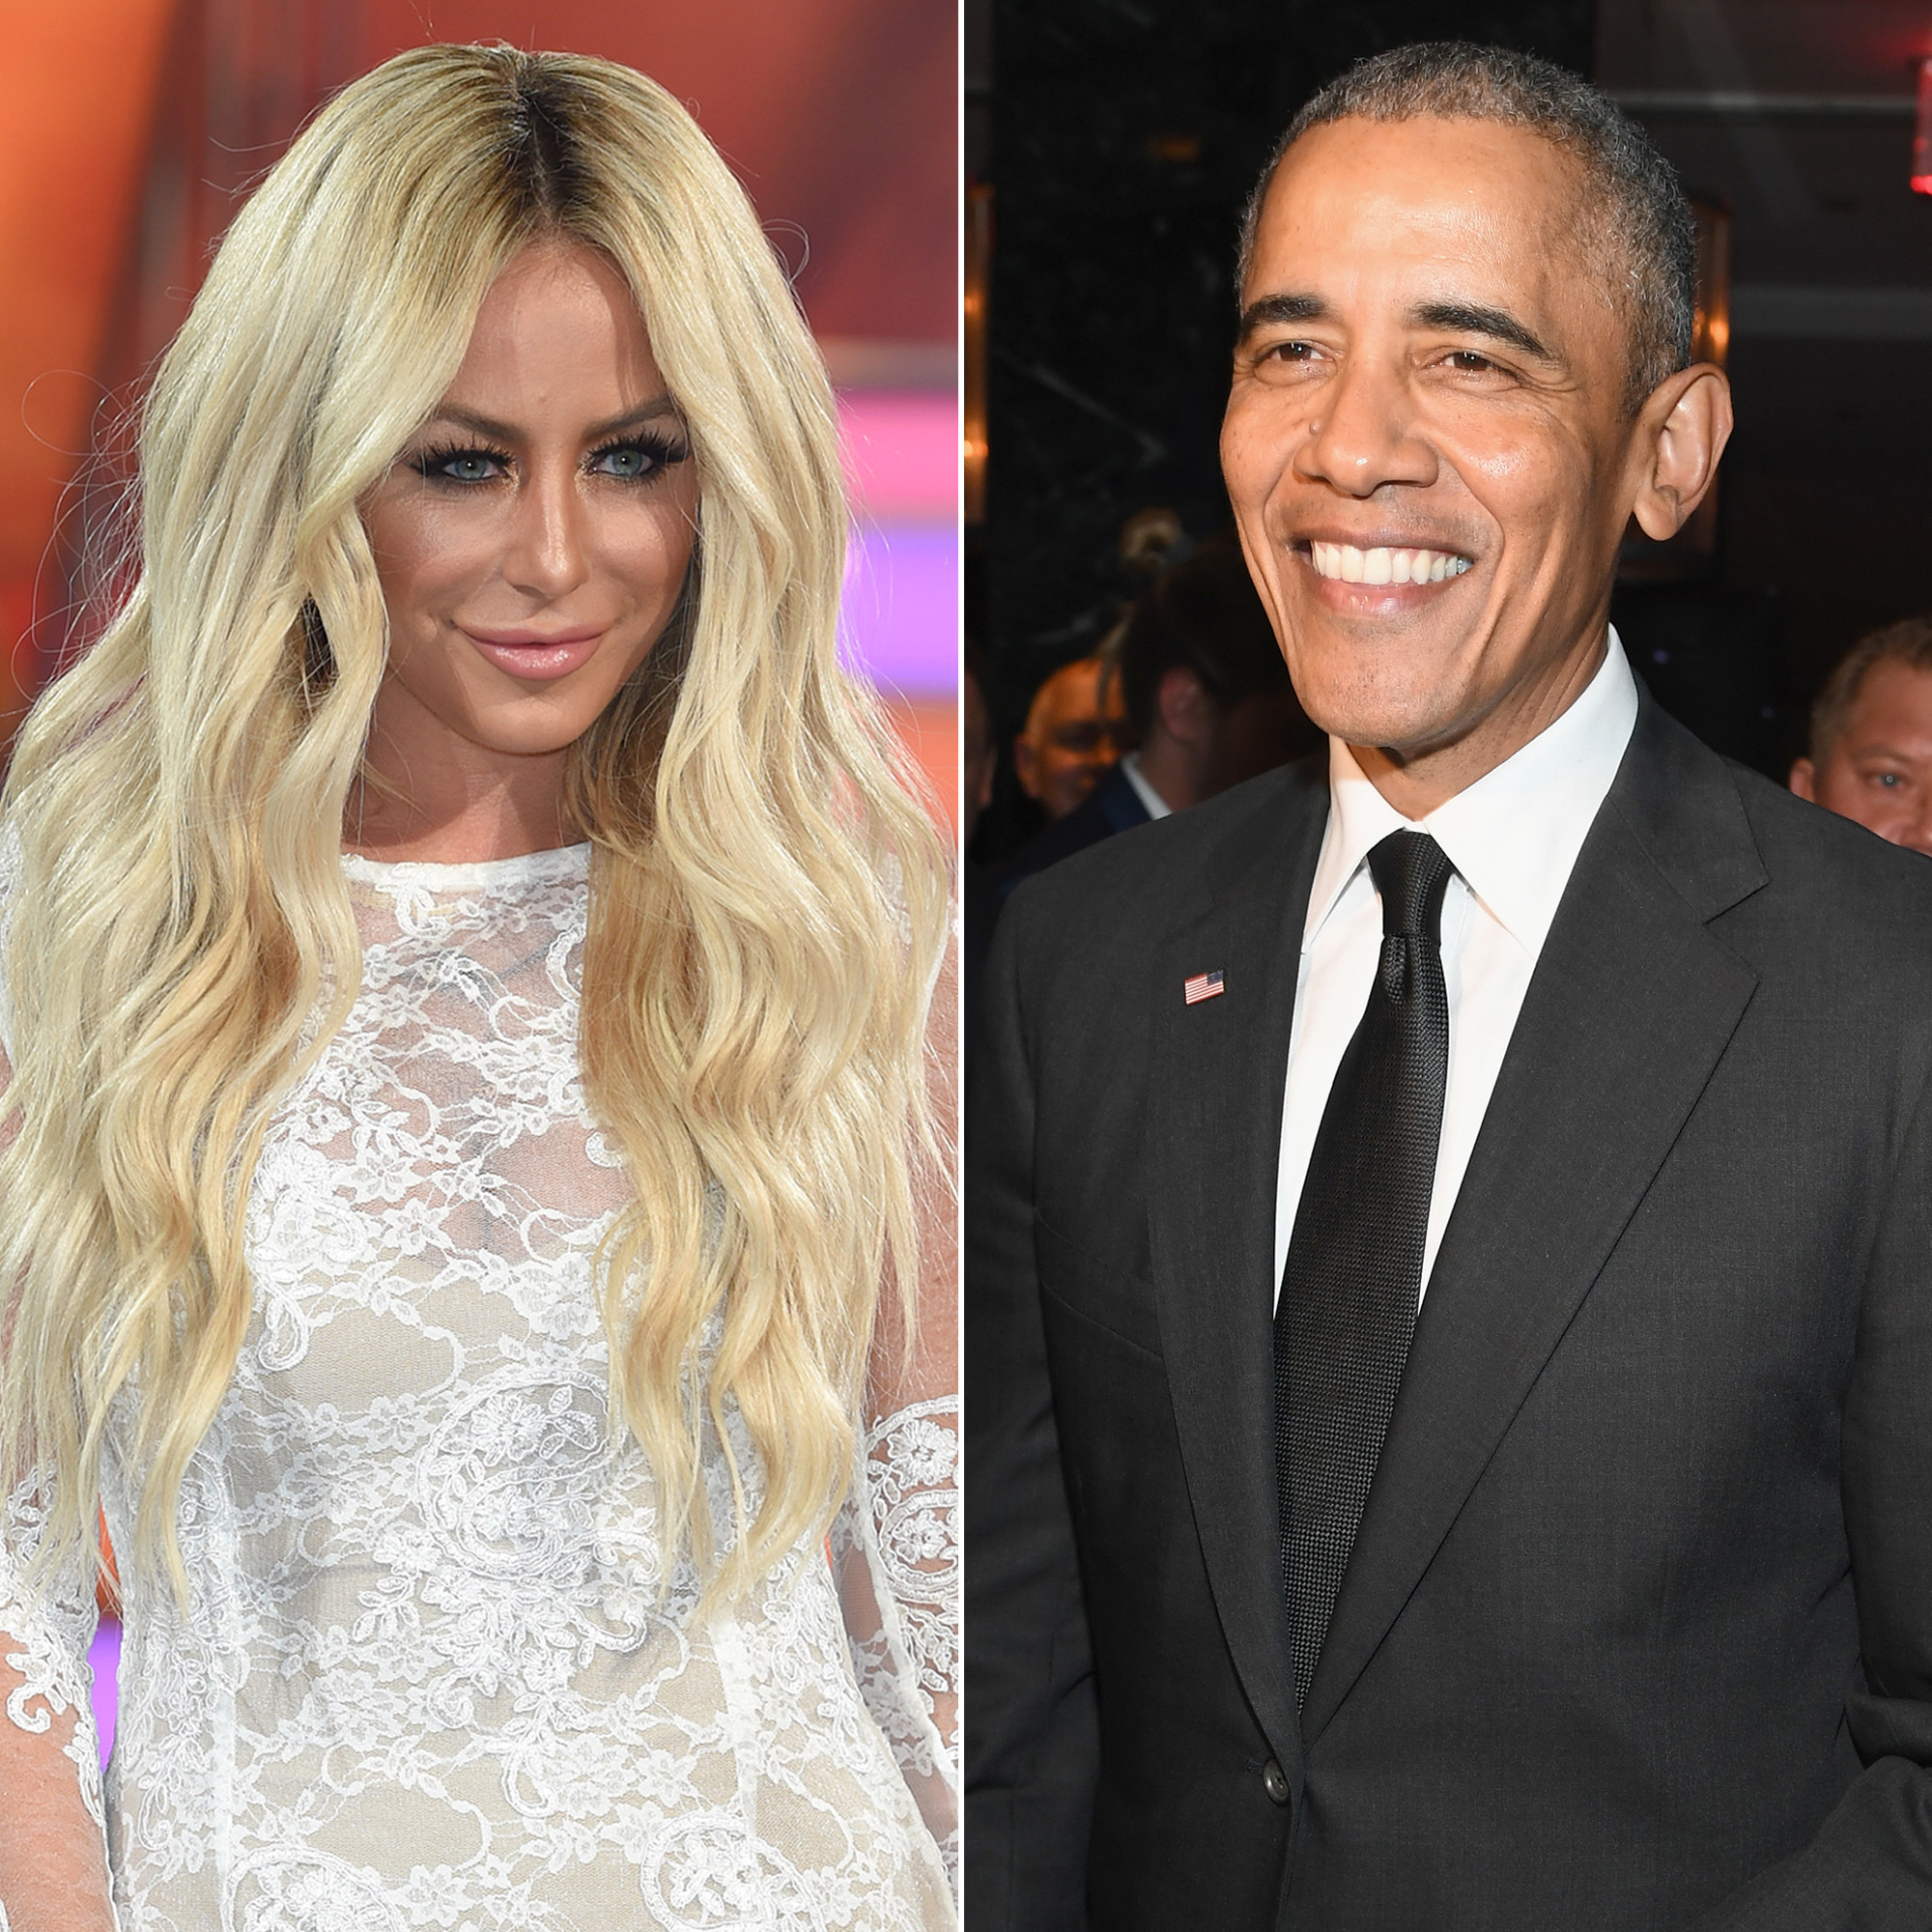 American Singer Aubrey O'Day Wants Barack Obama As Her Sperm Donor